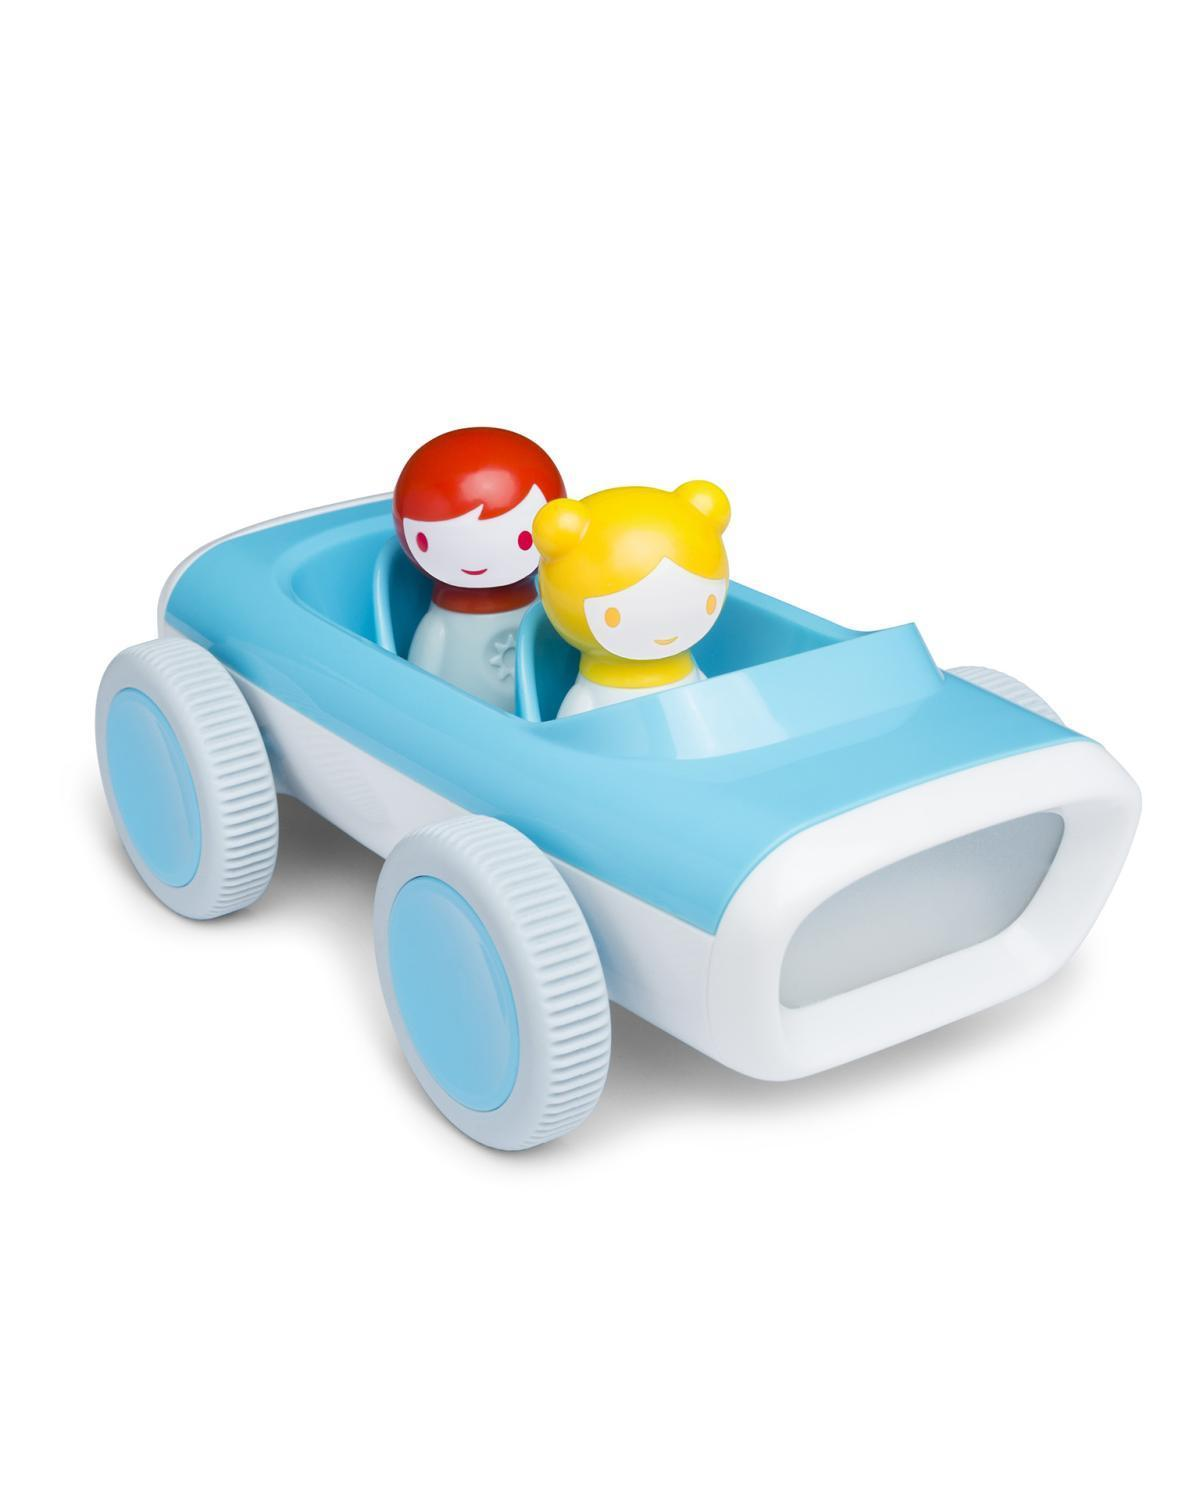 Little kid o play Myland Car